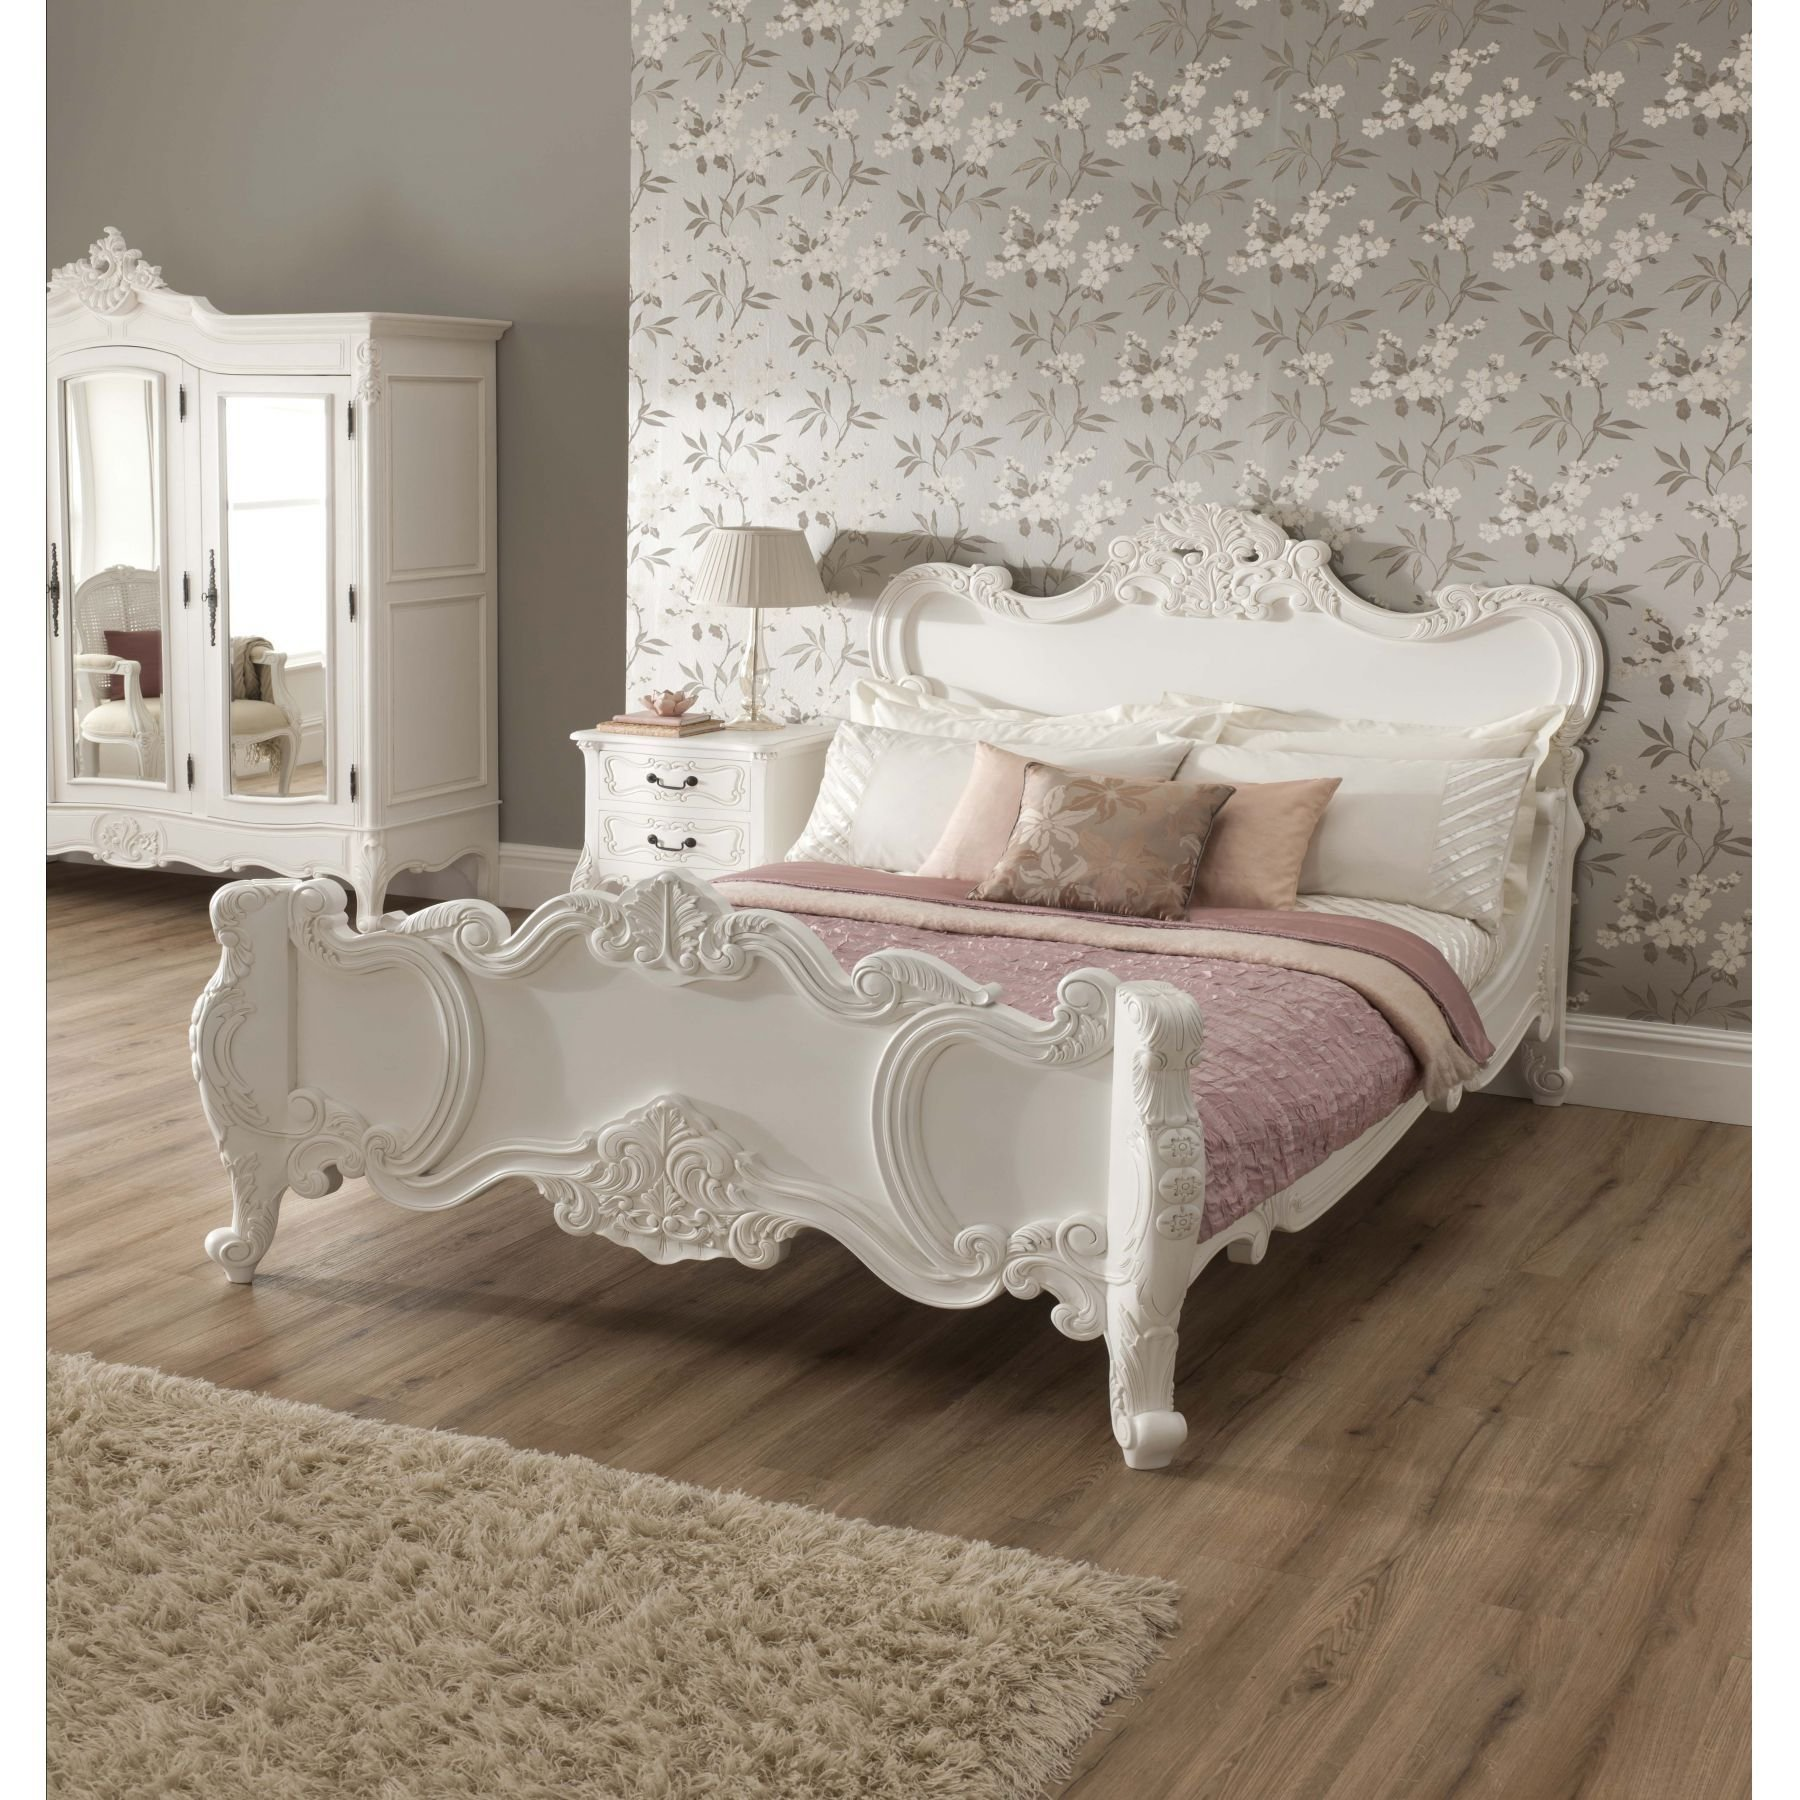 Best Vintage Your Room With 9 Shabby Chic Bedroom Furniture Ideas Atzine Com With Pictures